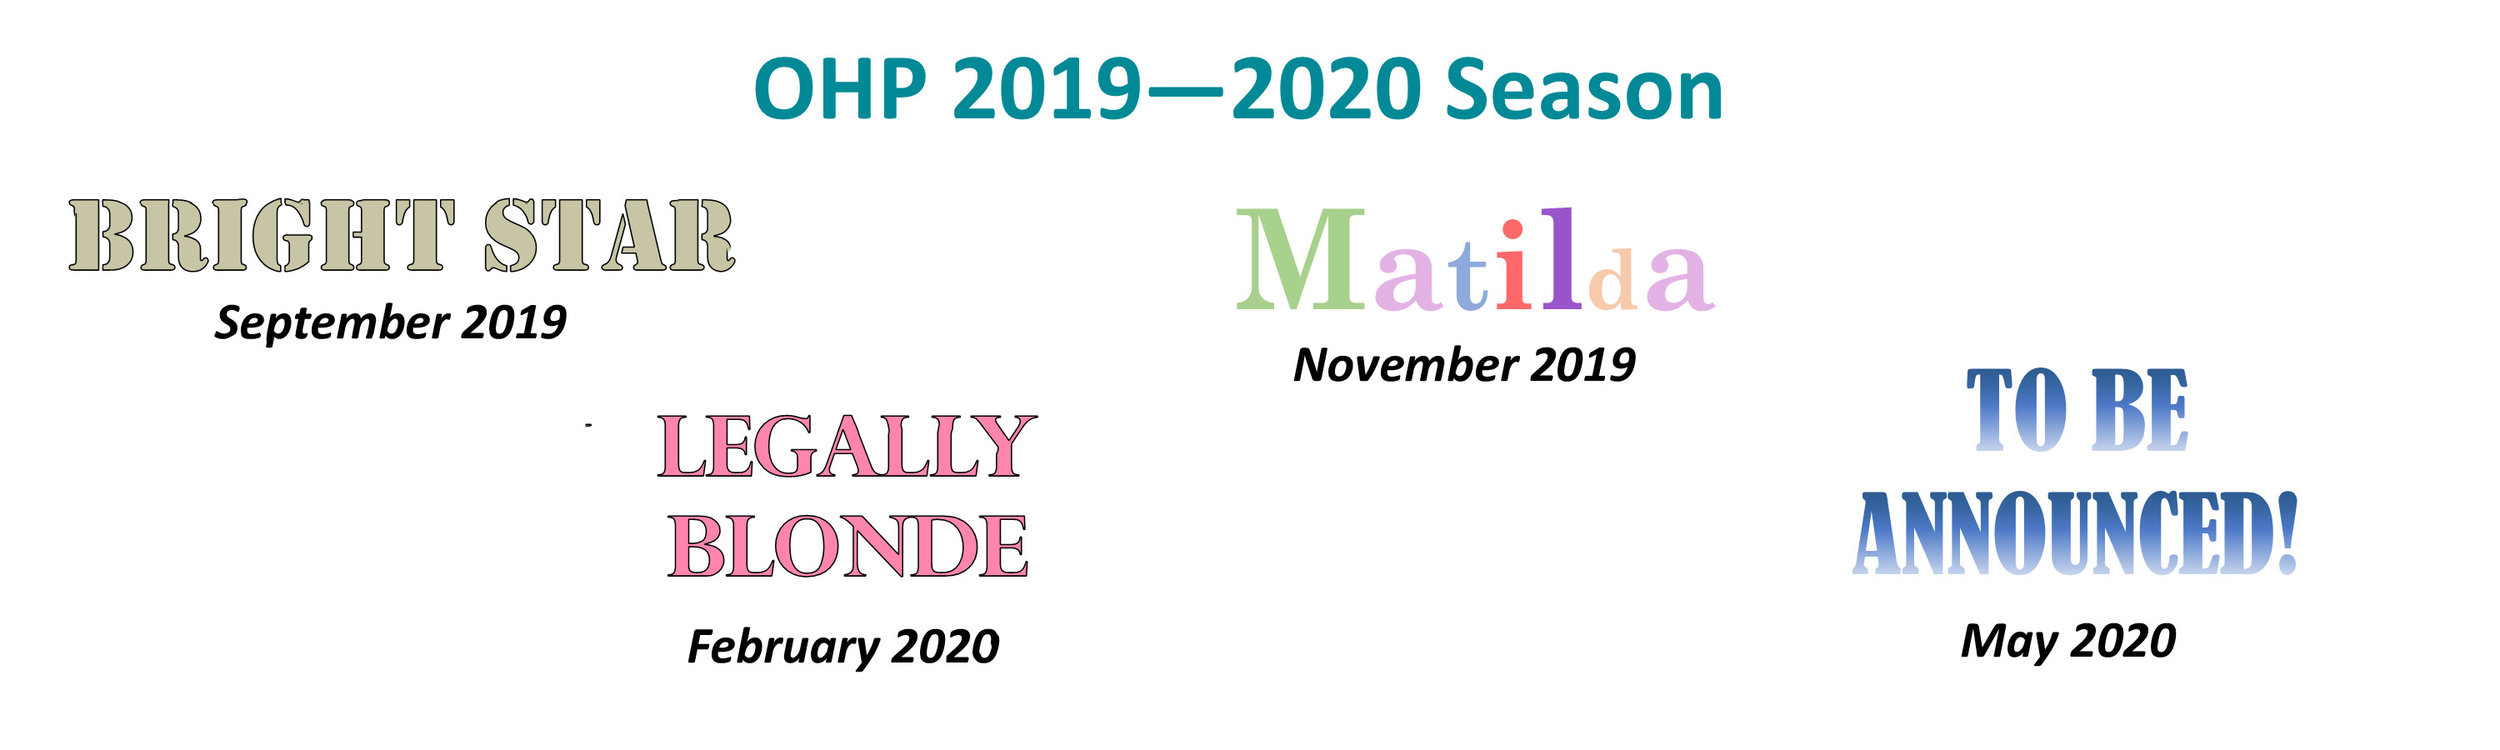 2019-2020 Season Announcement website banner.jpg